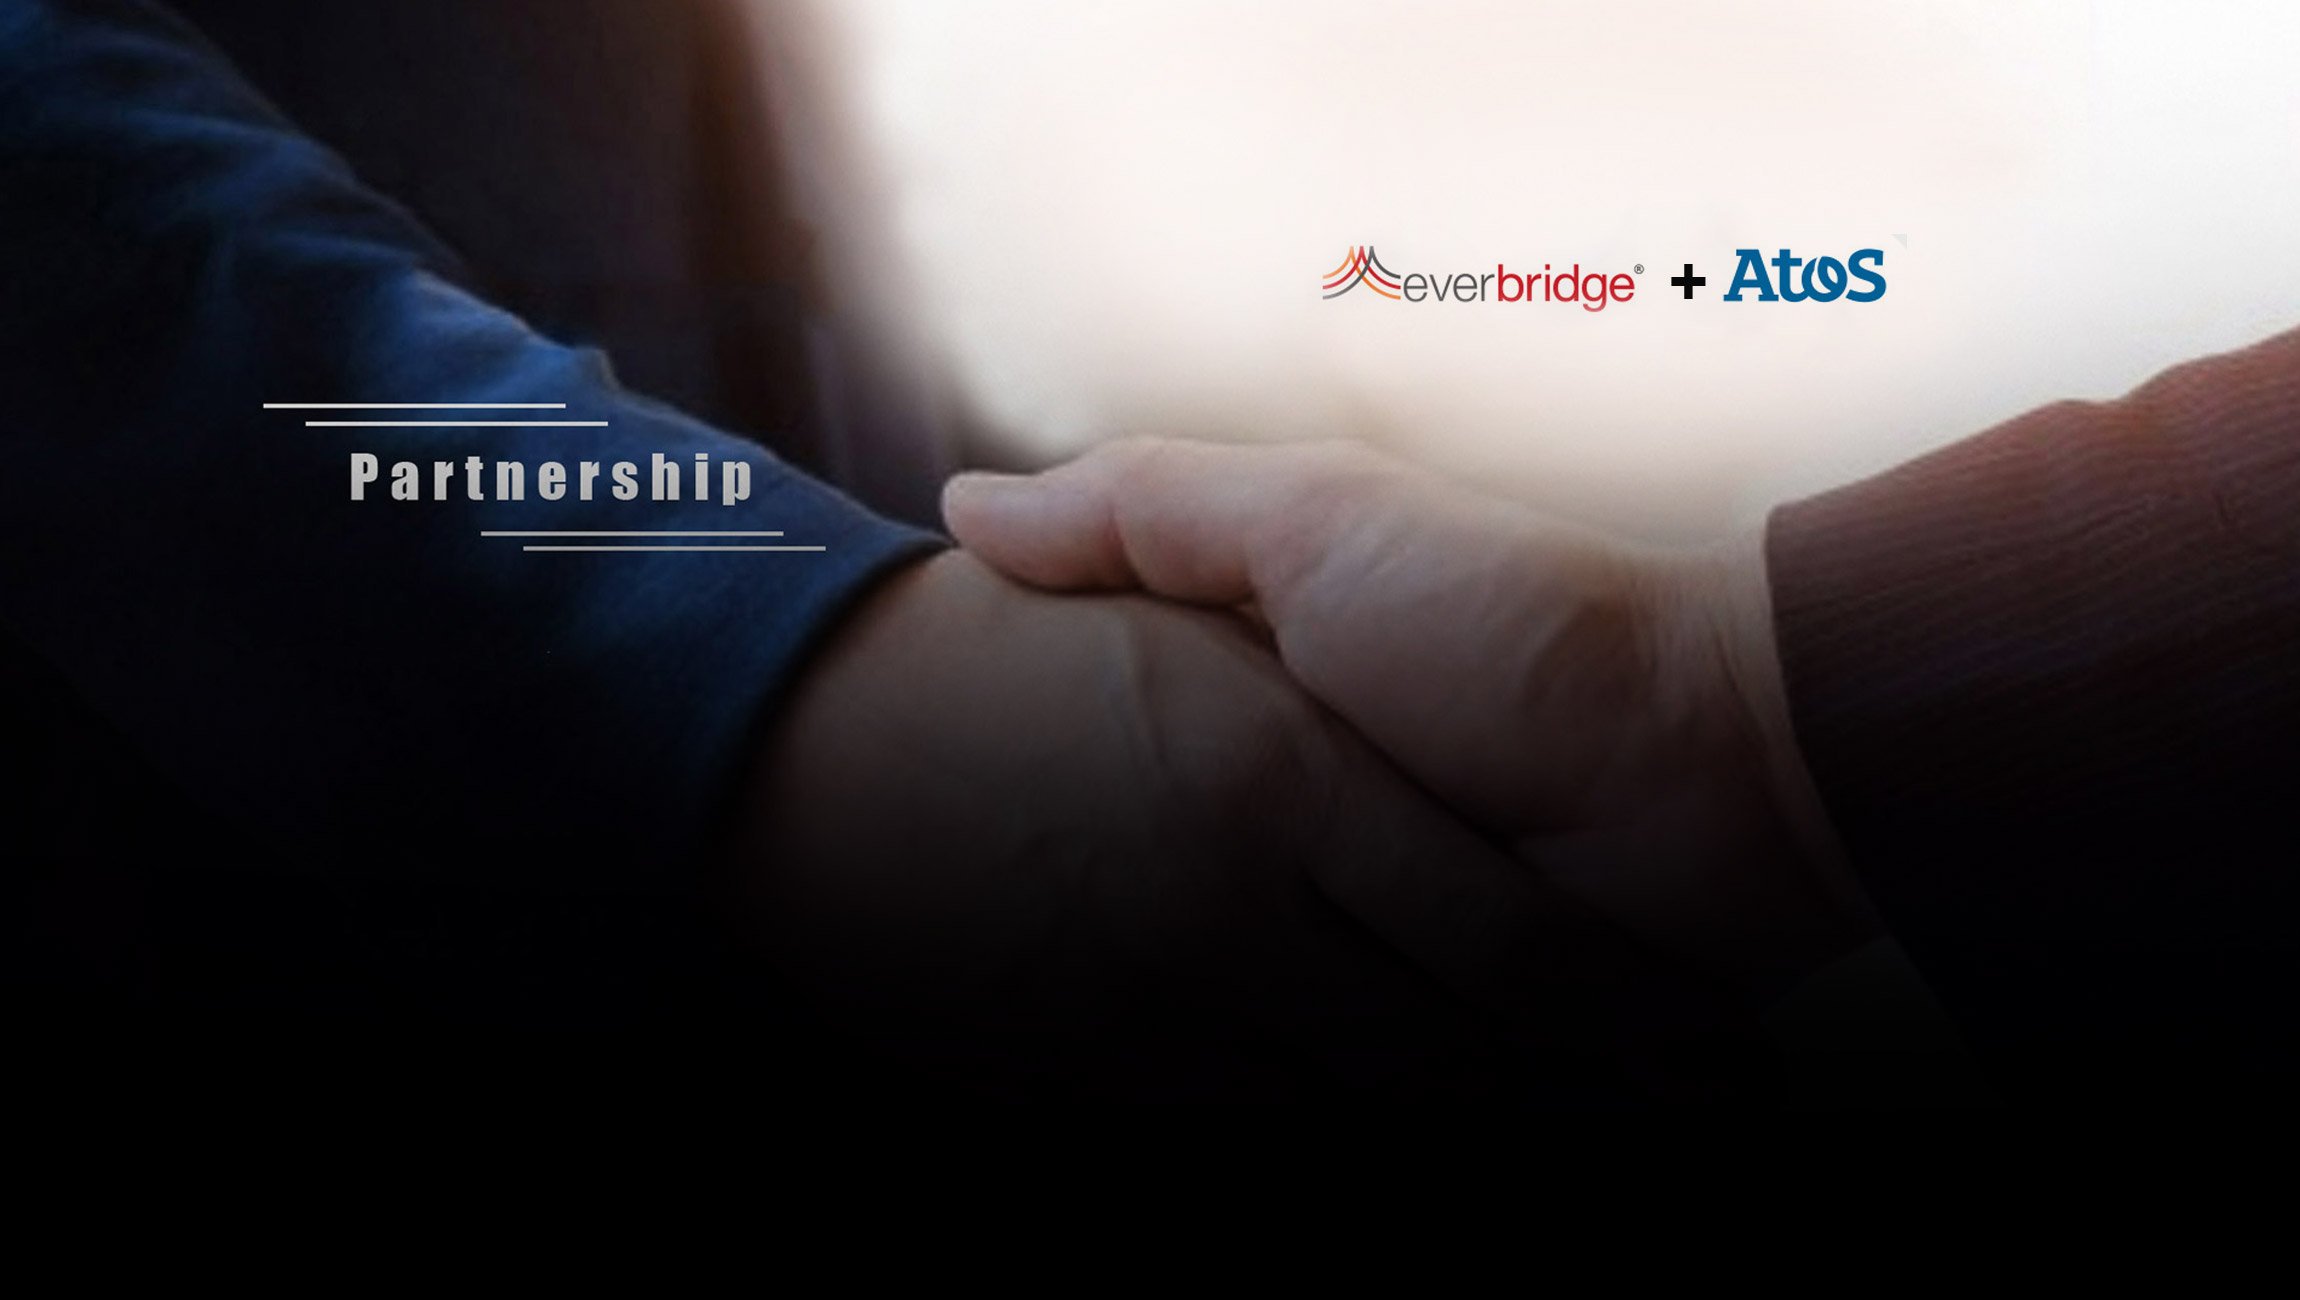 Everbridge-Partners-with-Digital-Transformation-Leader-Atos-to-Expand-Critical-Event-Management-(CEM)-Adoption-Globally